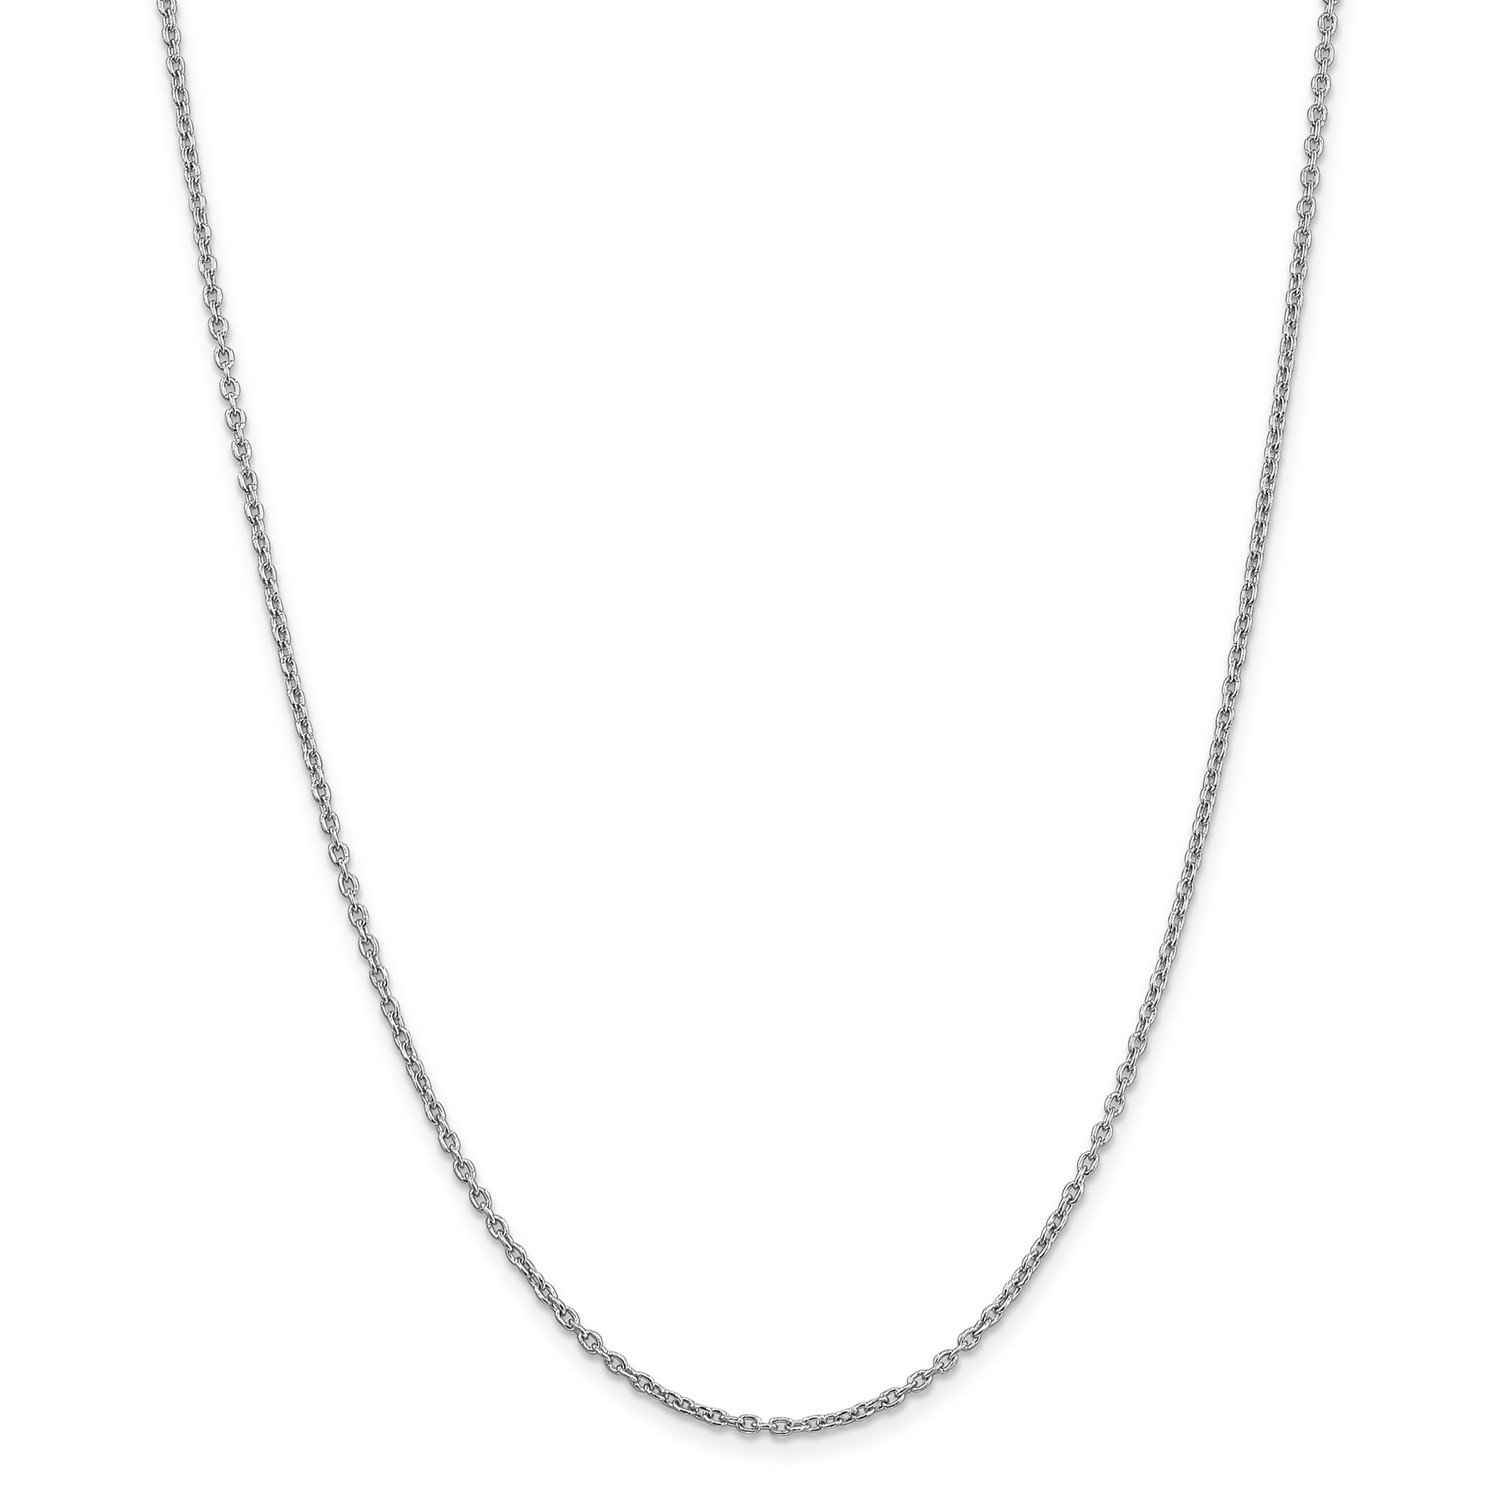 Roy Rose Jewelry 14K White Gold 2mm Cable Chain Necklace ~ Length 18'' inches